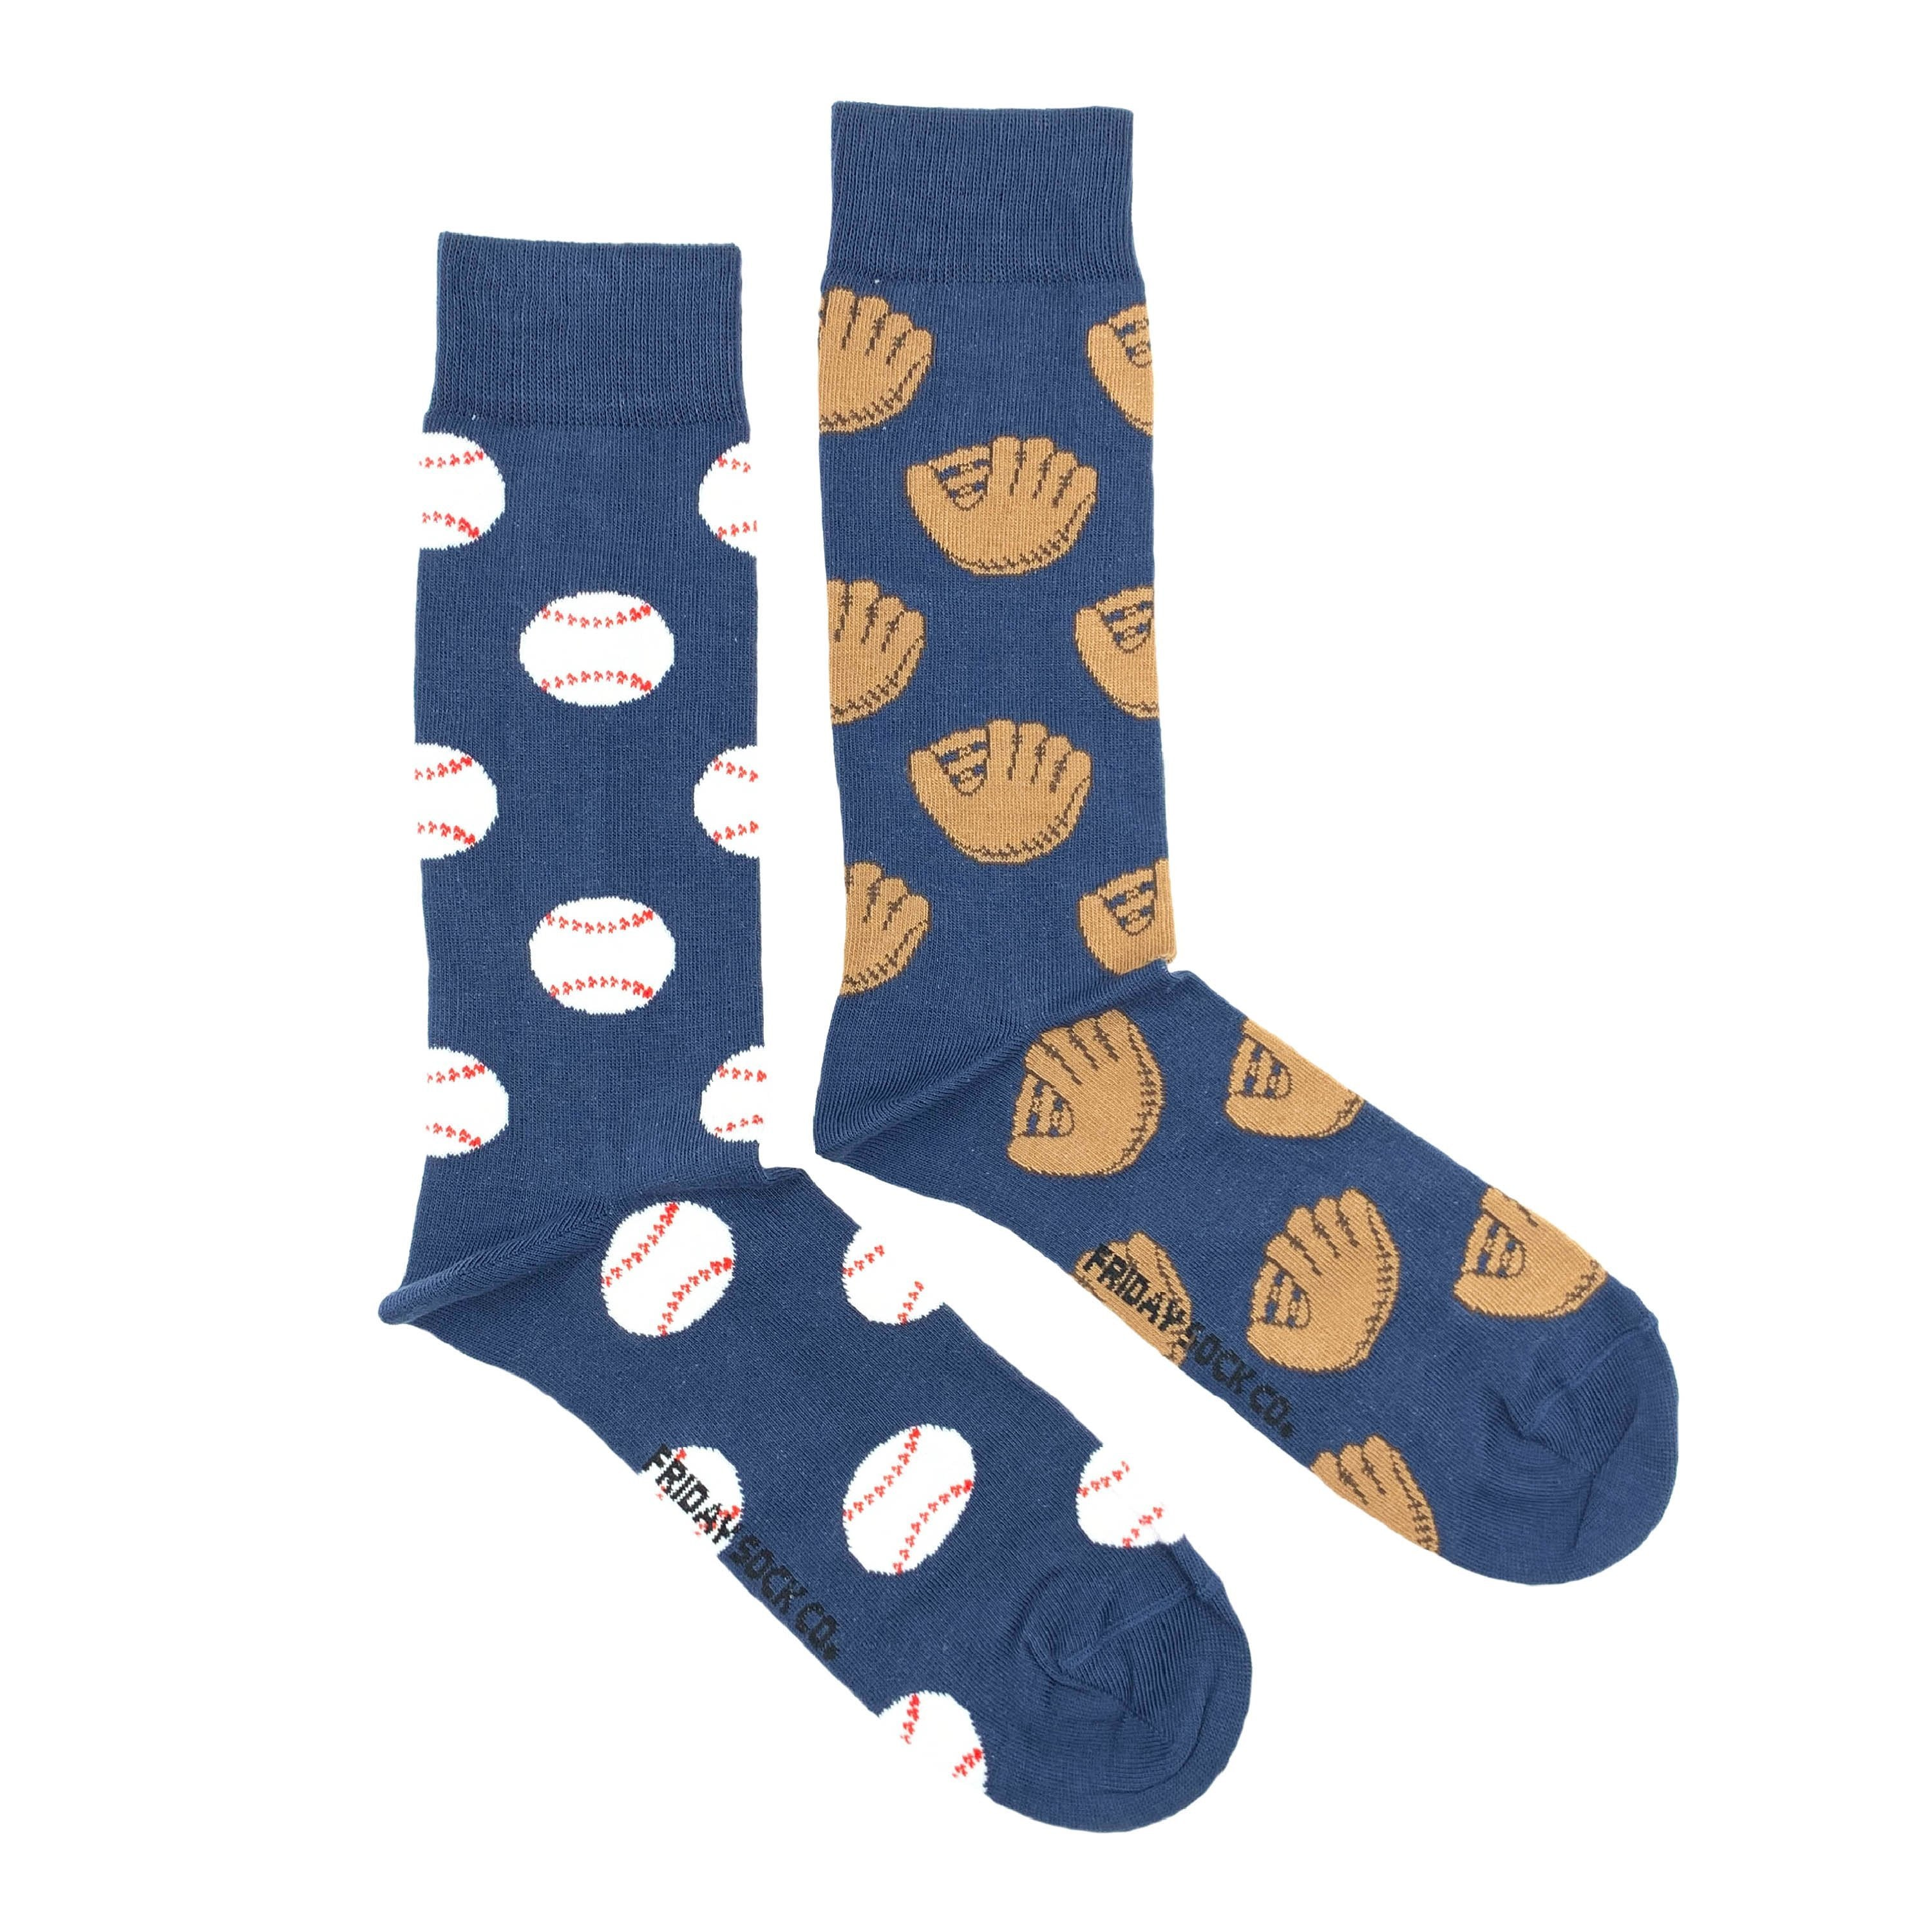 Men's Midcalf Socks - Baseball